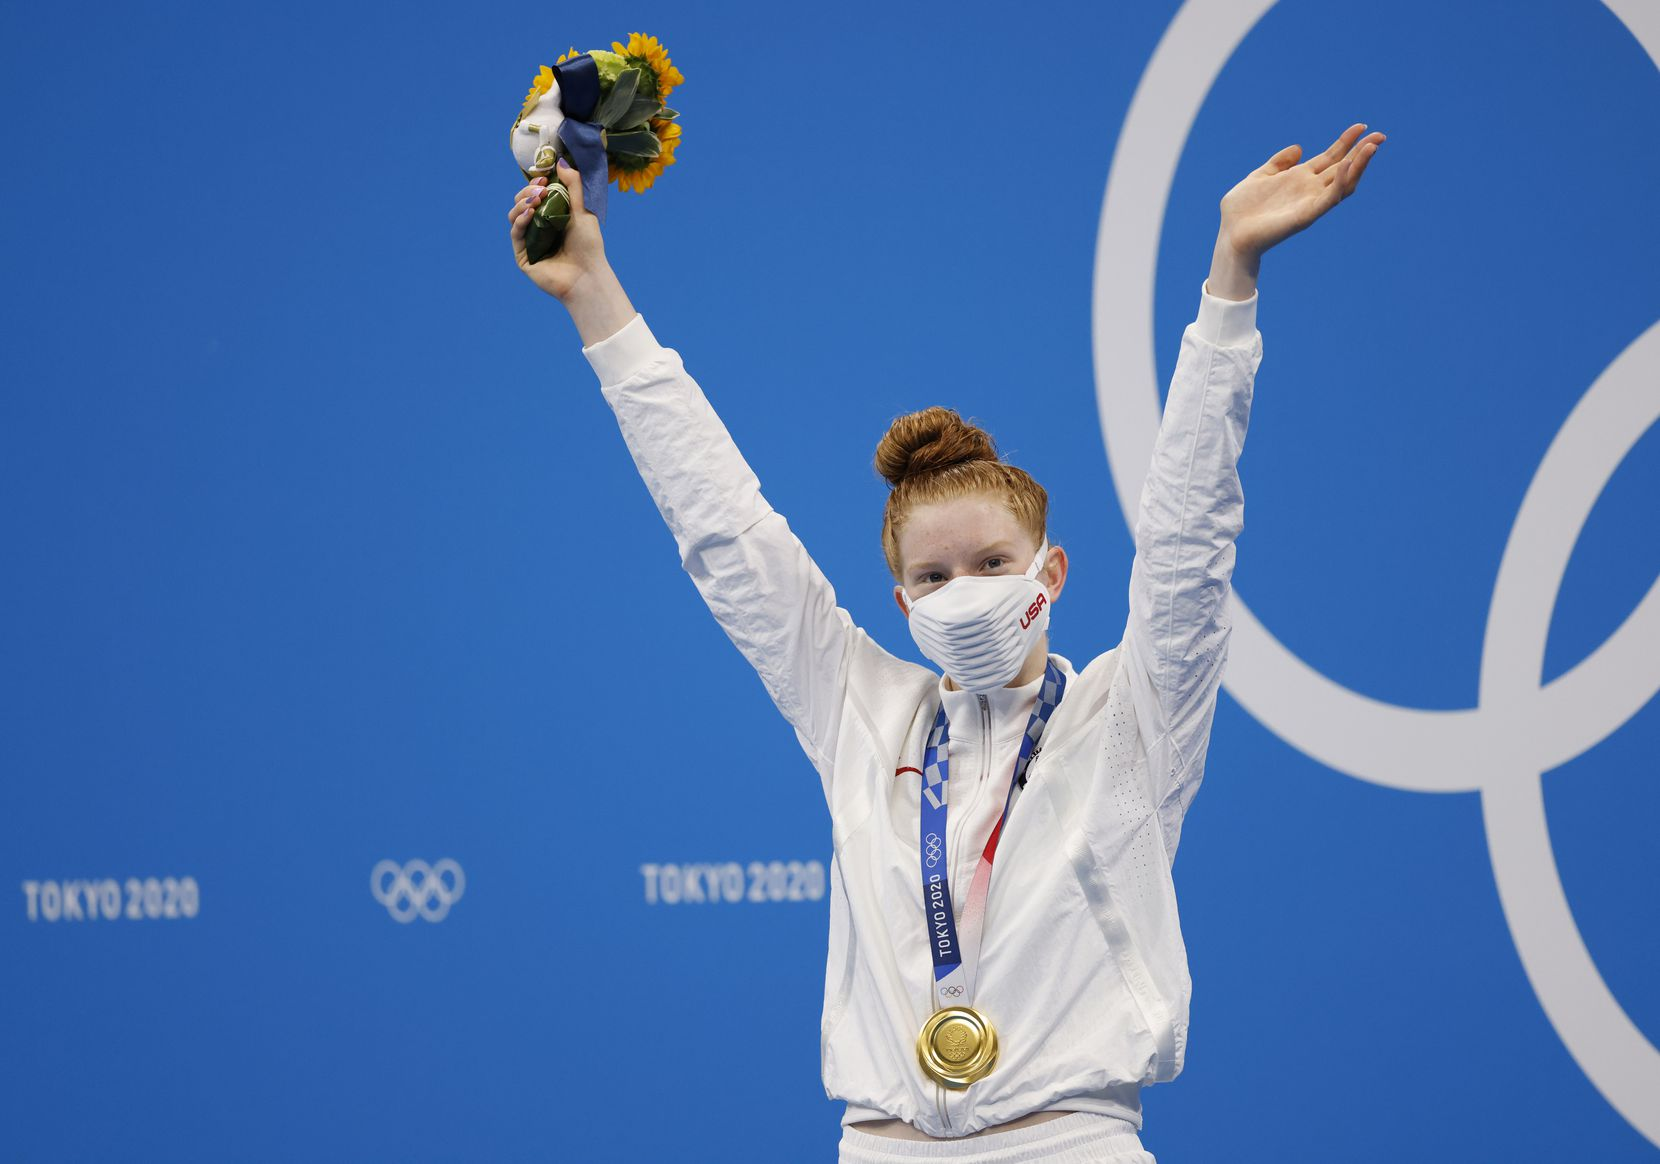 USA's Lydia Jacoby celebrates after receiving her gold medal during the medal ceremony for the women's 100 meter breaststroke final during the postponed 2020 Tokyo Olympics at the Tokyo Aquatics Center on Tuesday, July 27, 2021, in Tokyo, Japan. Jacoby won with a time of 1:04.95 to take gold. (Vernon Bryant/The Dallas Morning News)